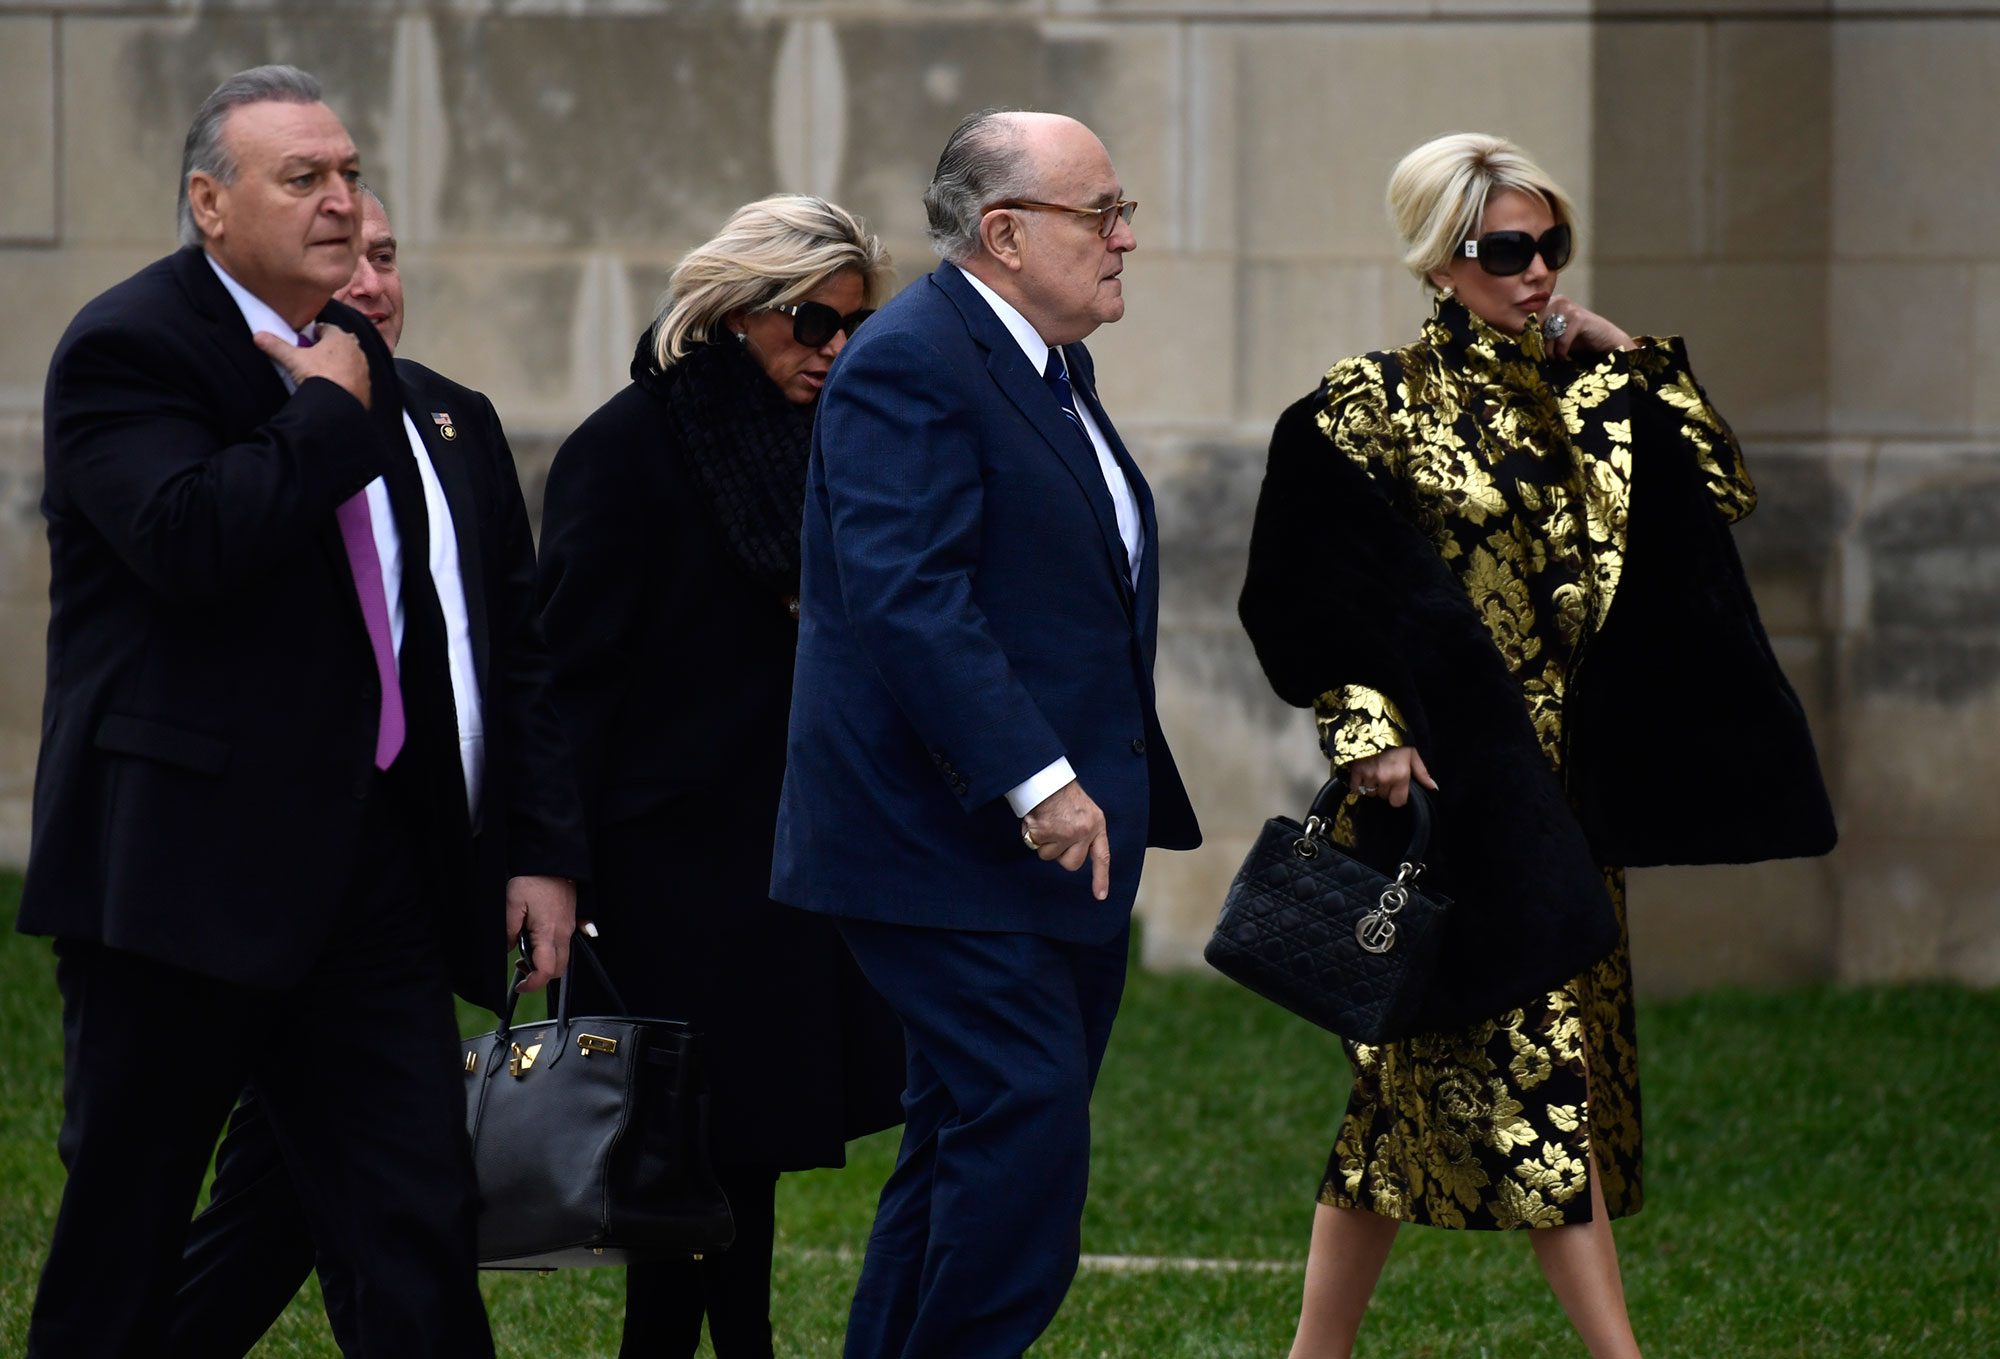 "<div class=""meta image-caption""><div class=""origin-logo origin-image none""><span>none</span></div><span class=""caption-text"">Rudy Guiliani, center, and other guests, arrive for the State Funeral of former President George H.W. Bush at the National Cathedral in Washington, Wednesday, Dec. 5, 2018. (Susan Walsh/AP Photo)</span></div>"